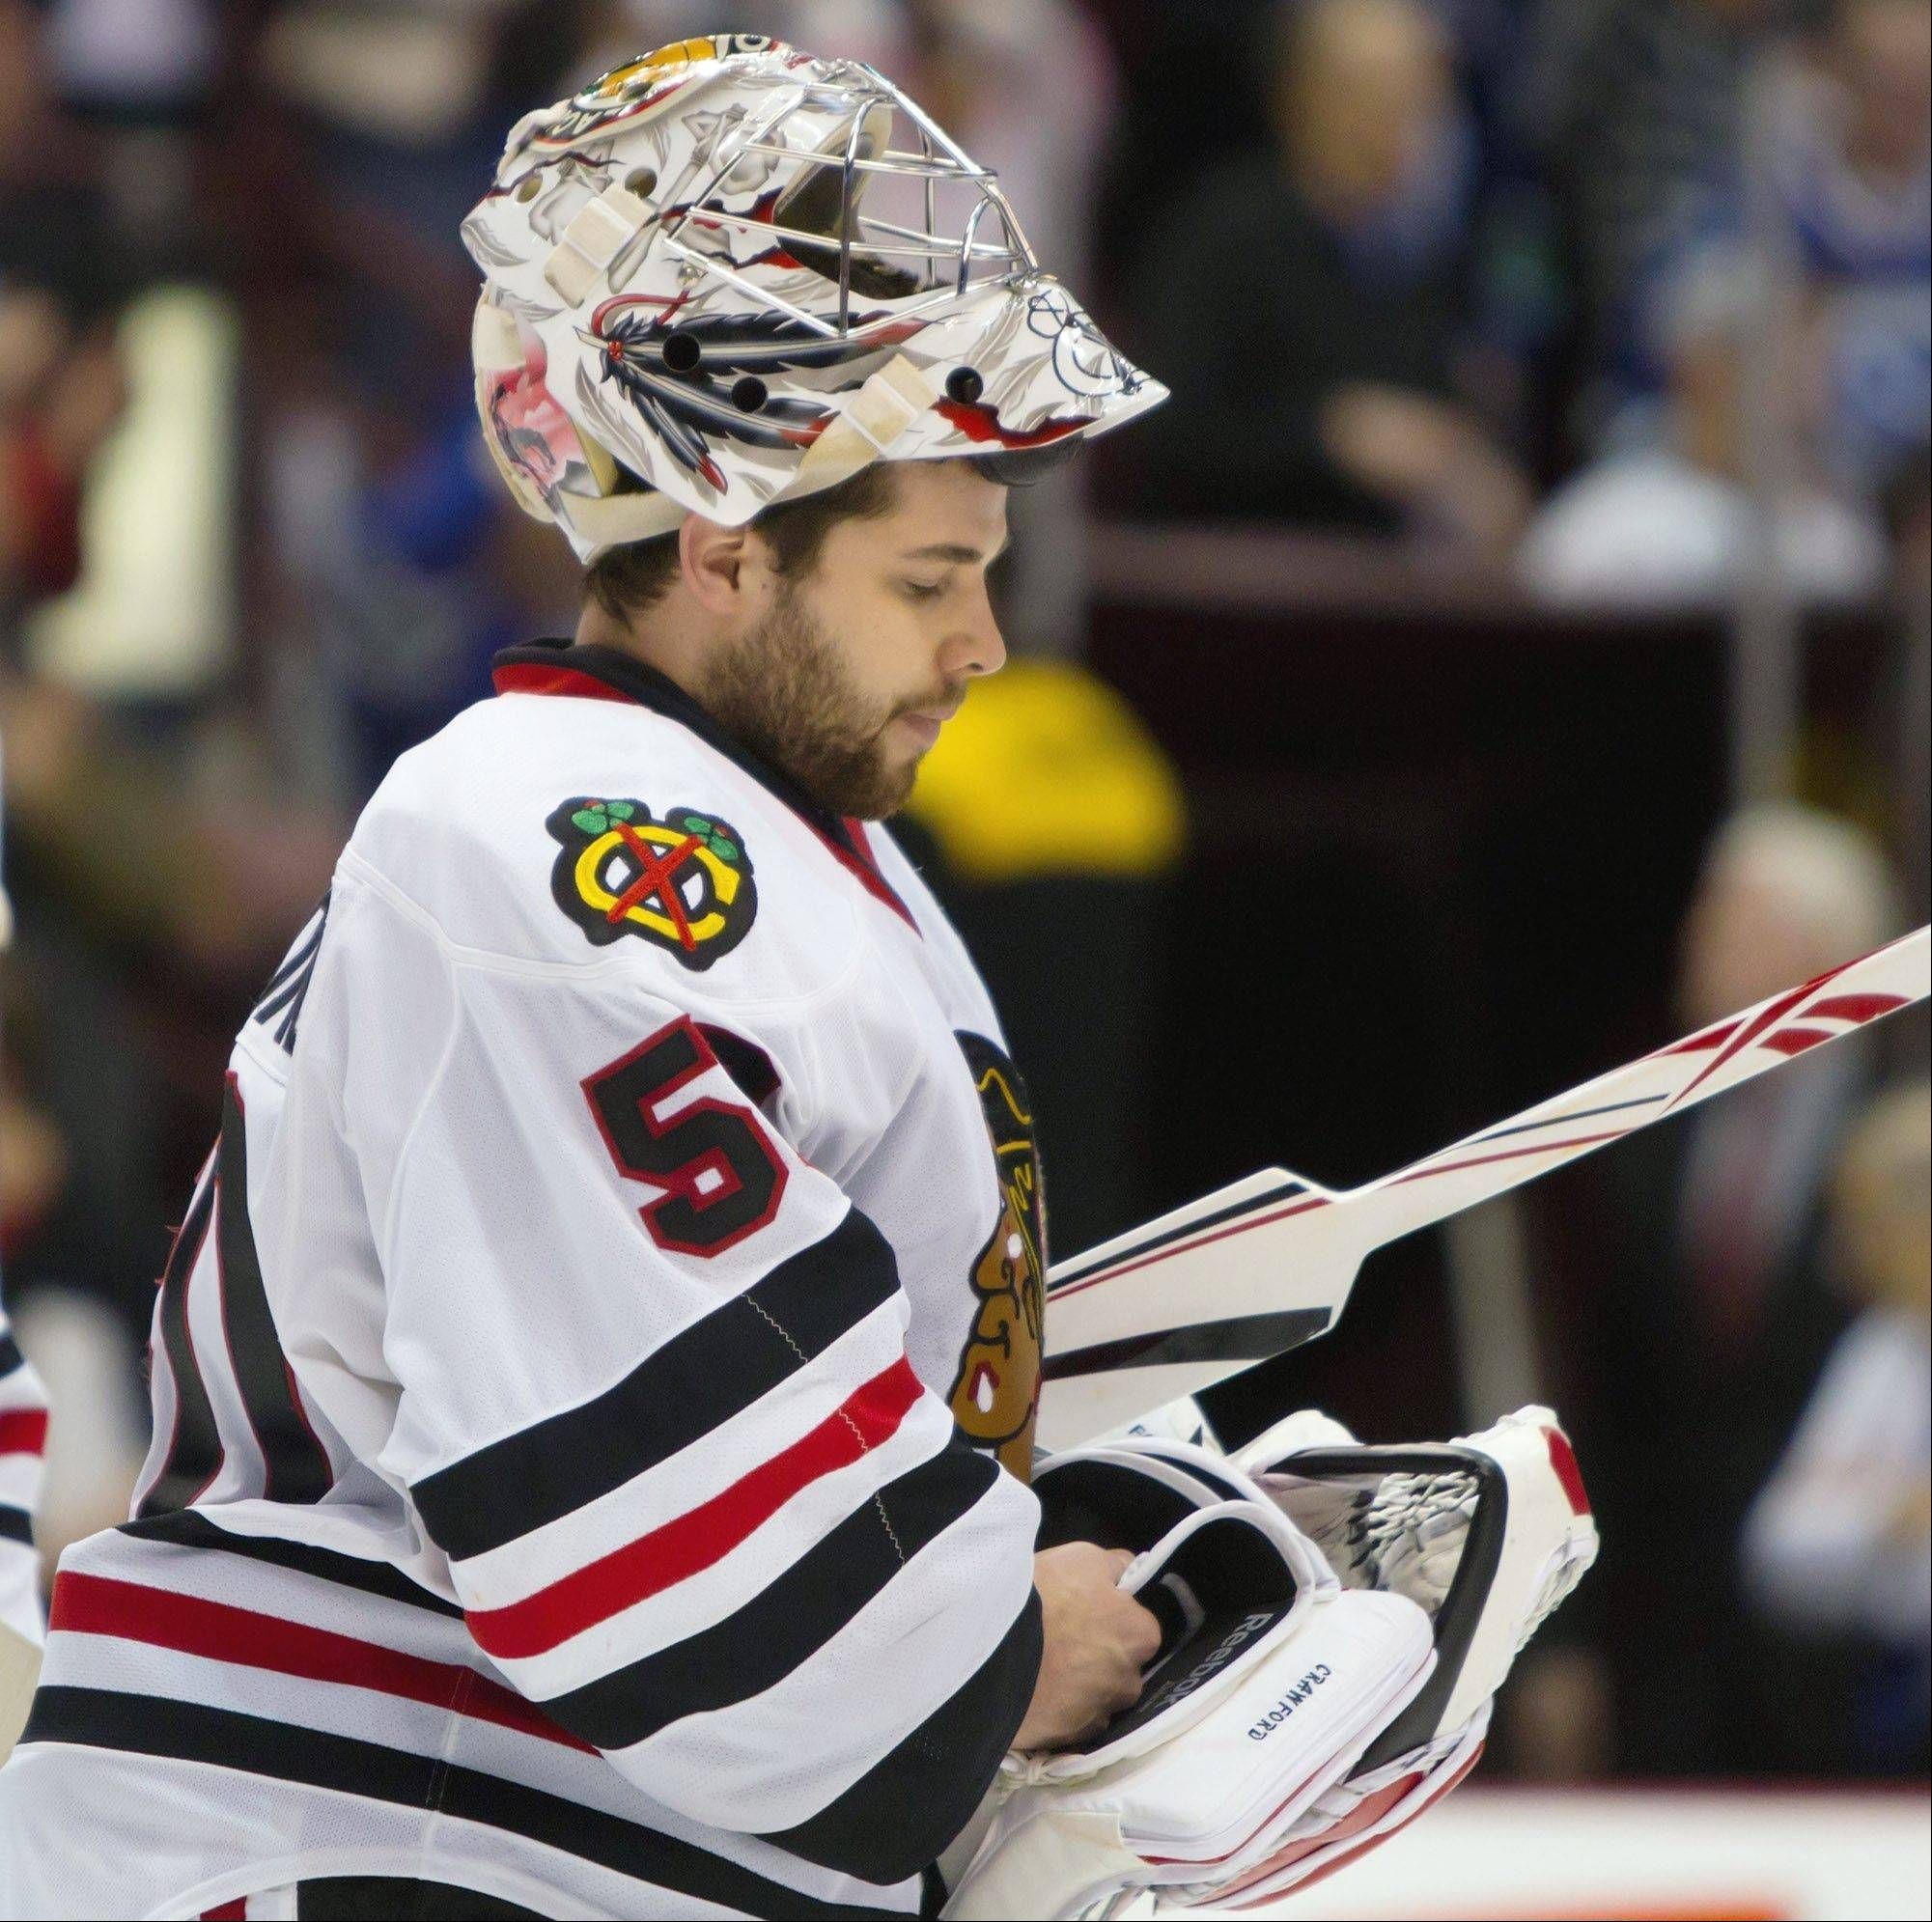 Goalie Corey Crawford and his Blackhawks teammates would have faced enormous pressure in a normal 82-game season after two straight first-round playoff exits, but the lockout-shortened campaign will be something else.